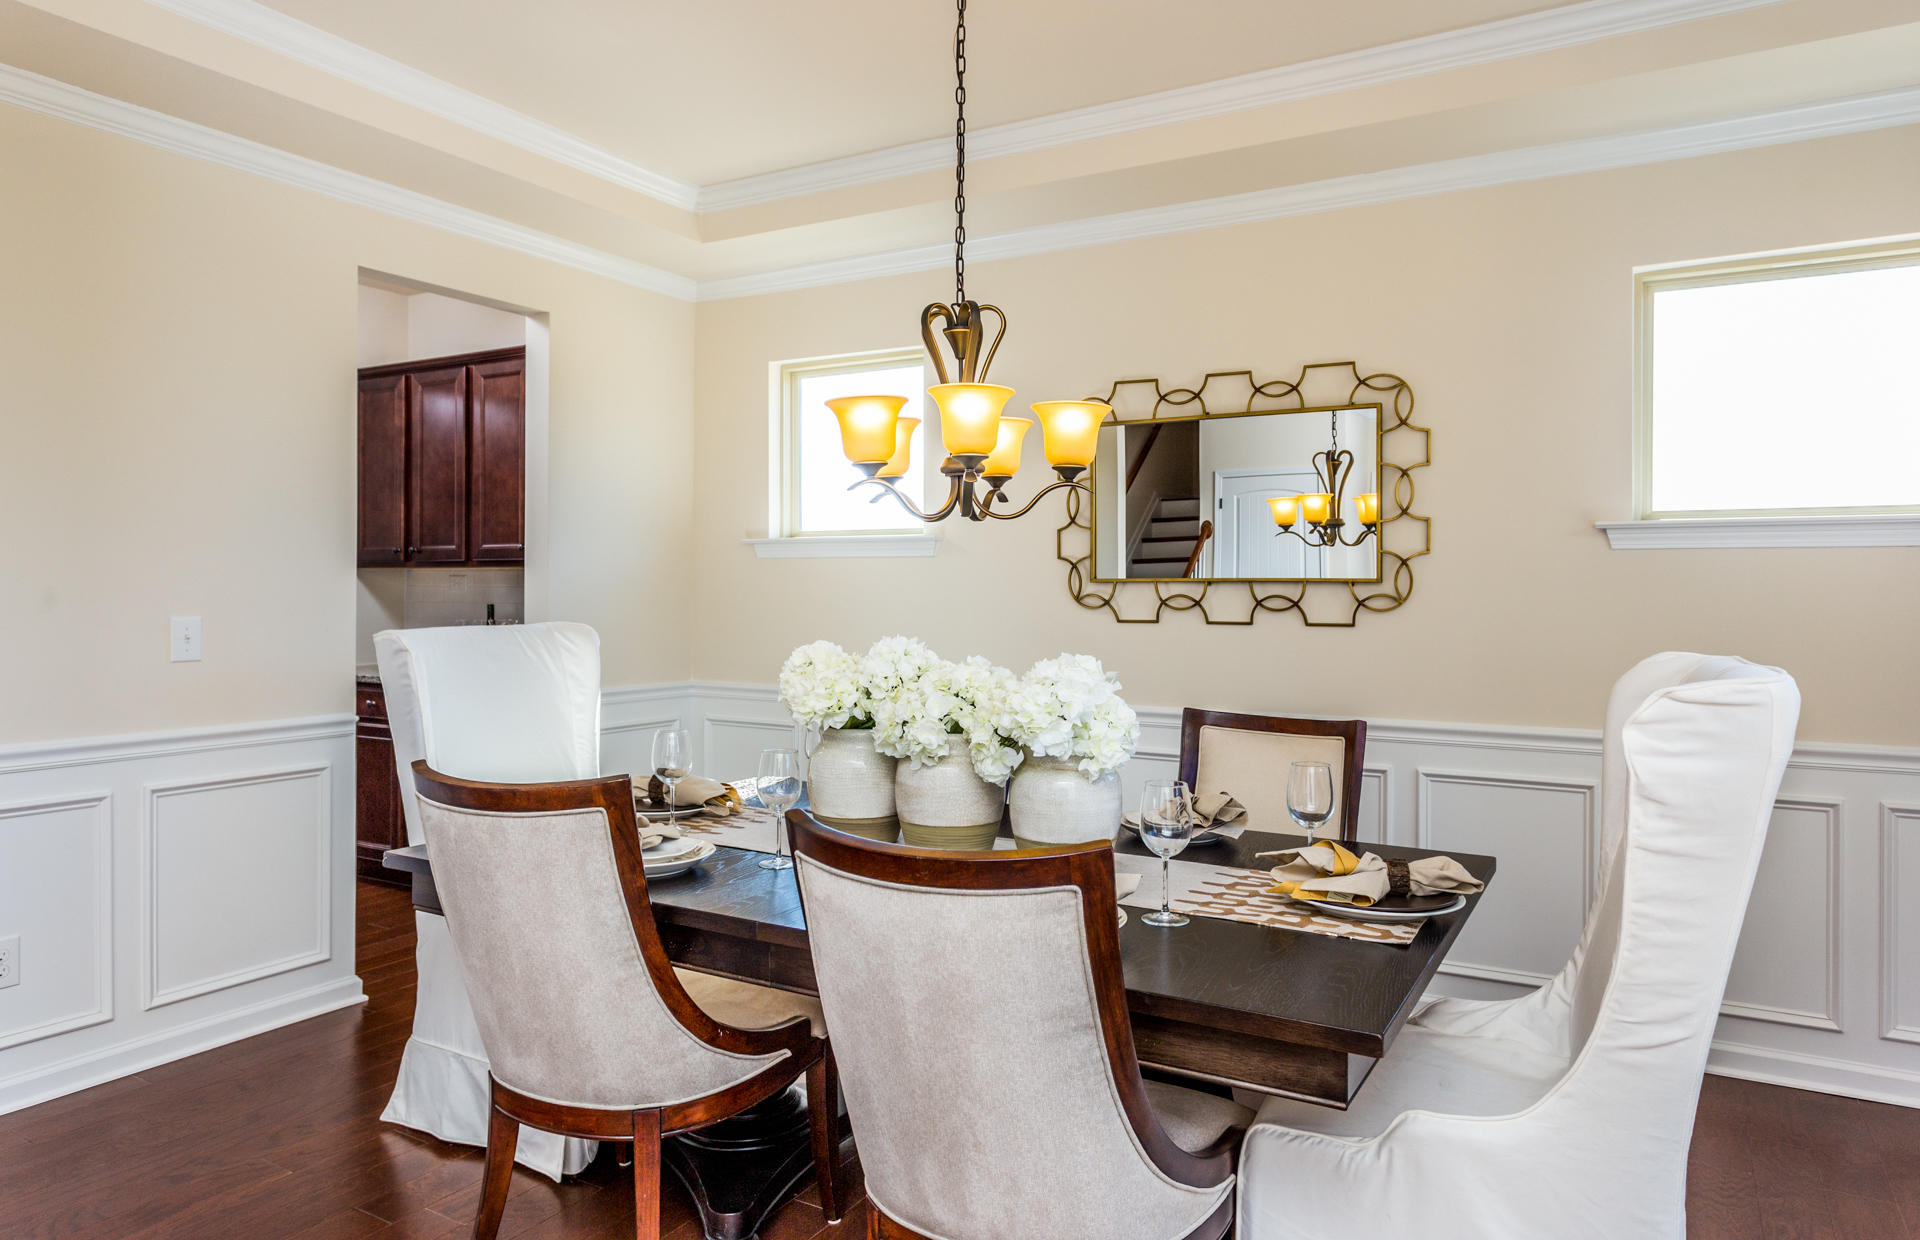 Greenmoor by Pulte Homes image 1